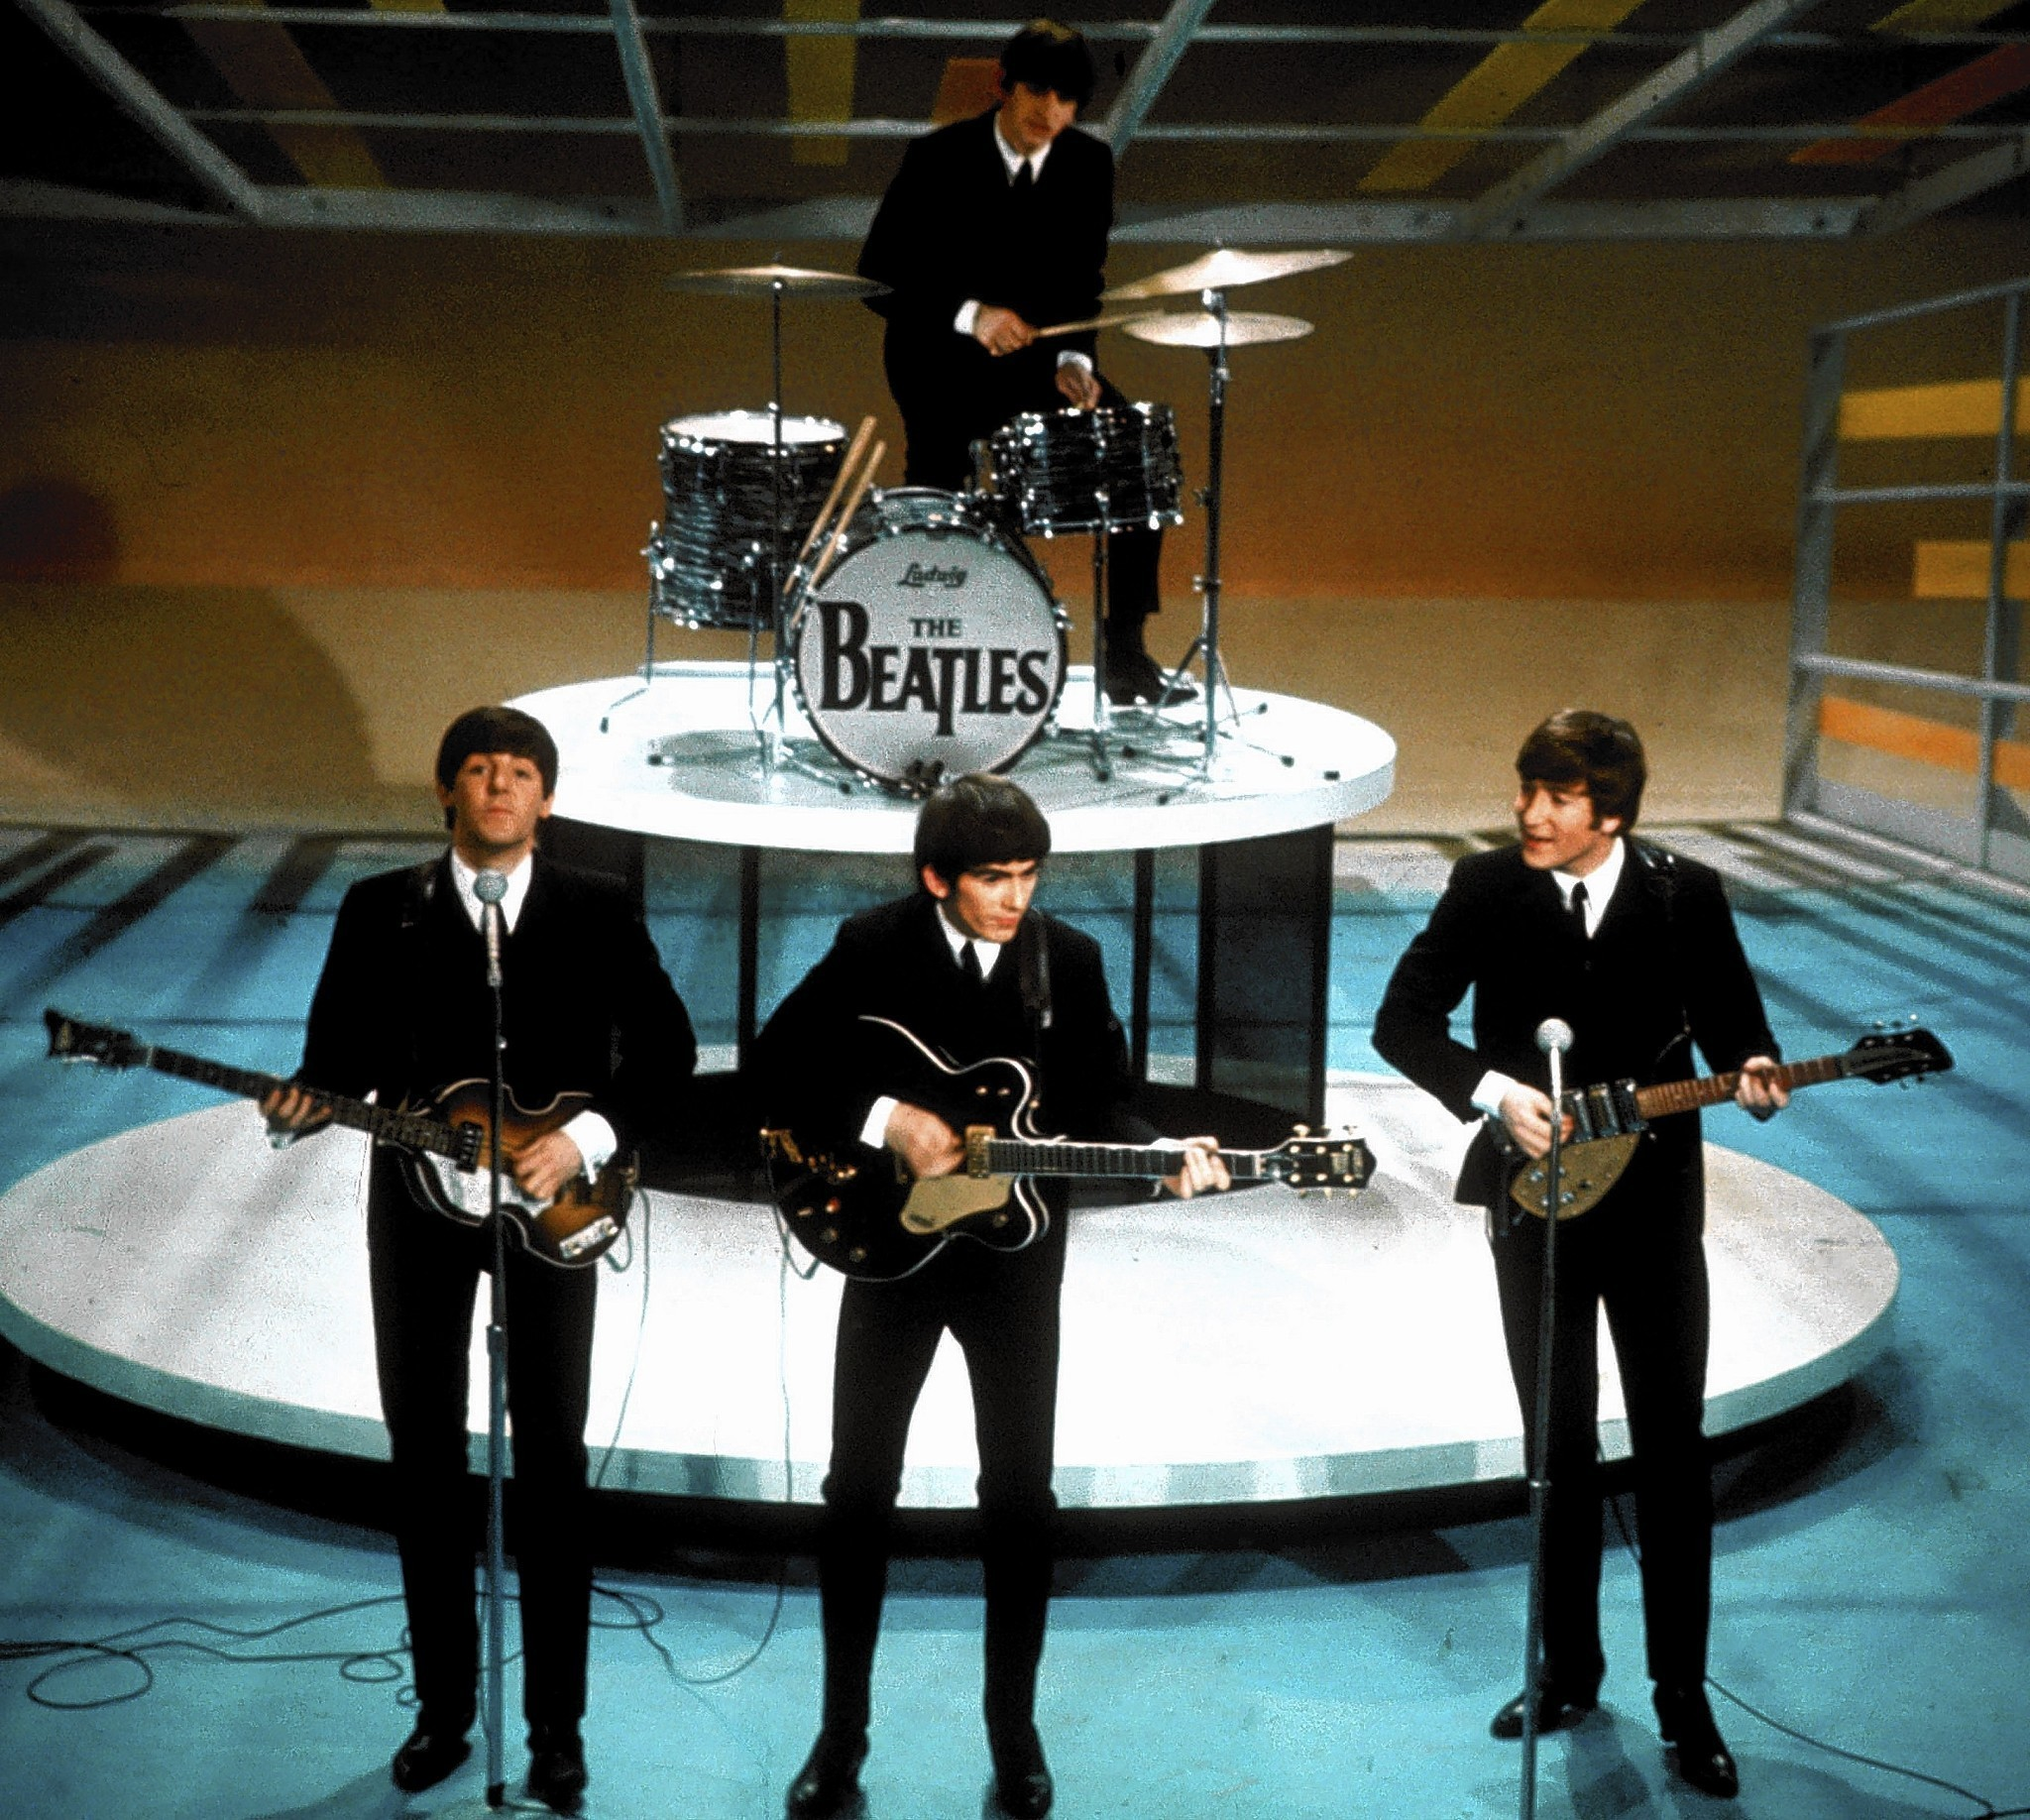 beatles' road to rock history started before 'ed sullivan show' - la times